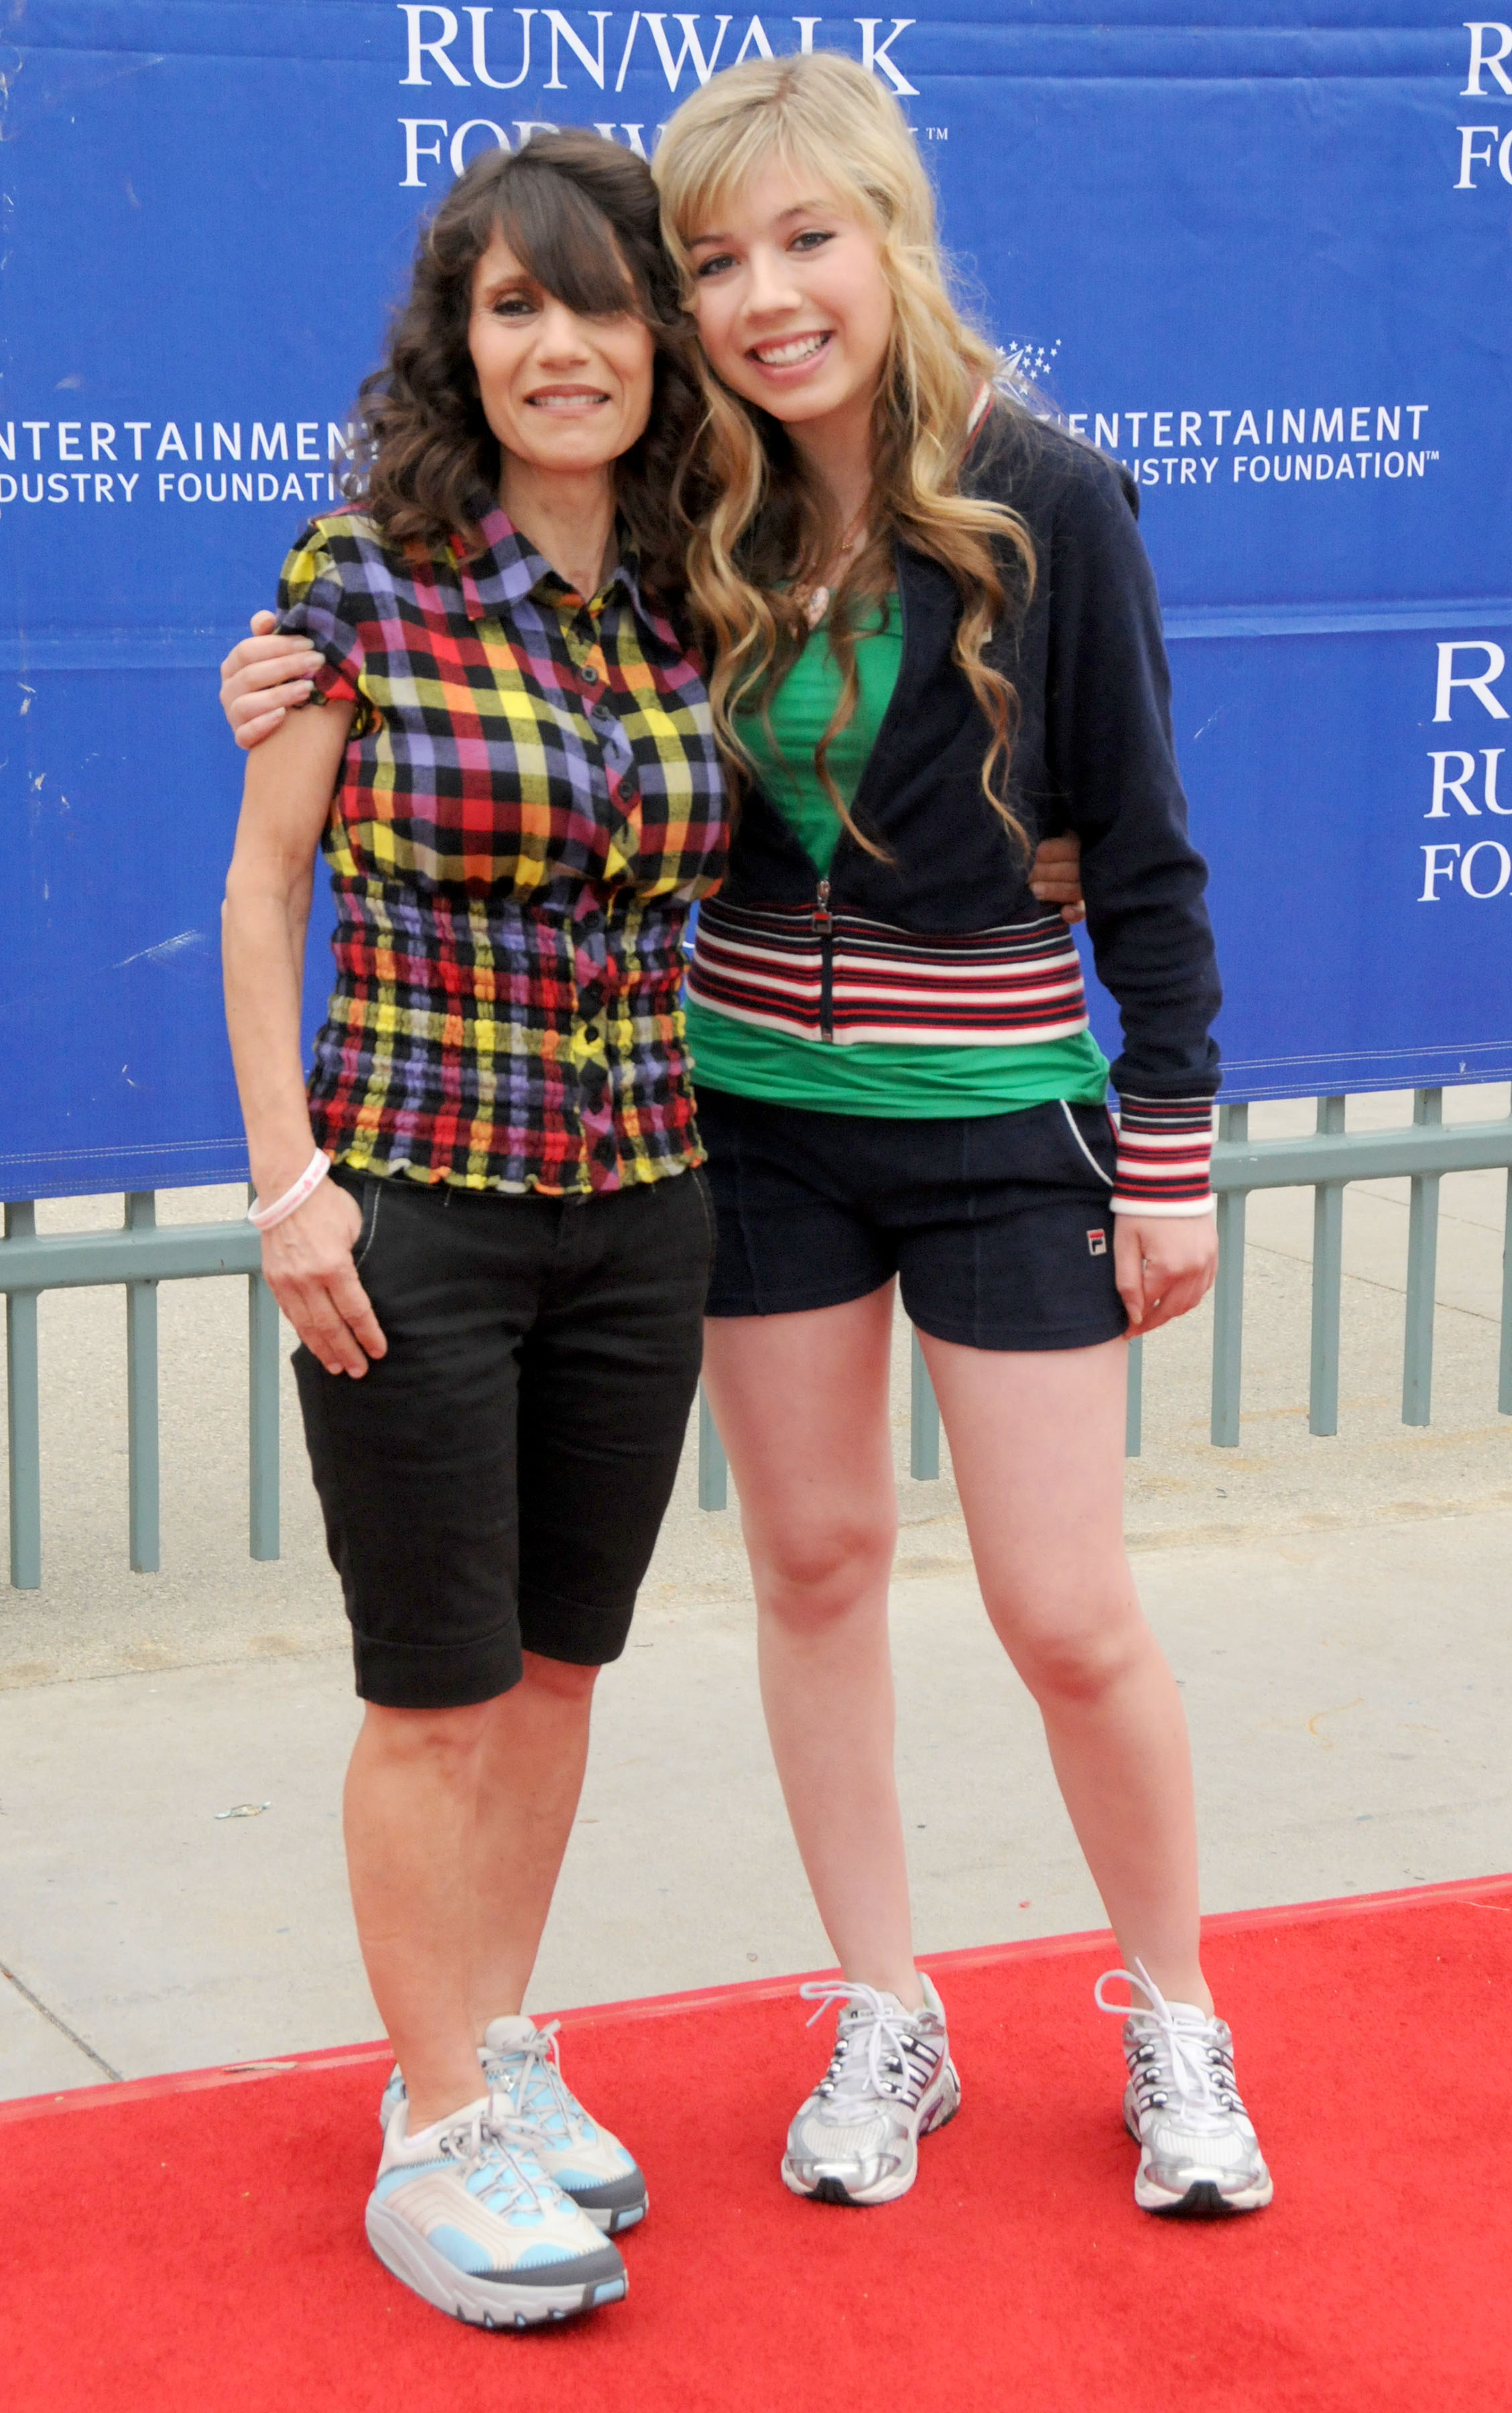 Jennette McCurdy and her Debbie McCurdy attend the 16th Annual EIF Revlon Run/Walk For Women; Held at the Los Angeles Memorial Coliseum on May 9, 2009.